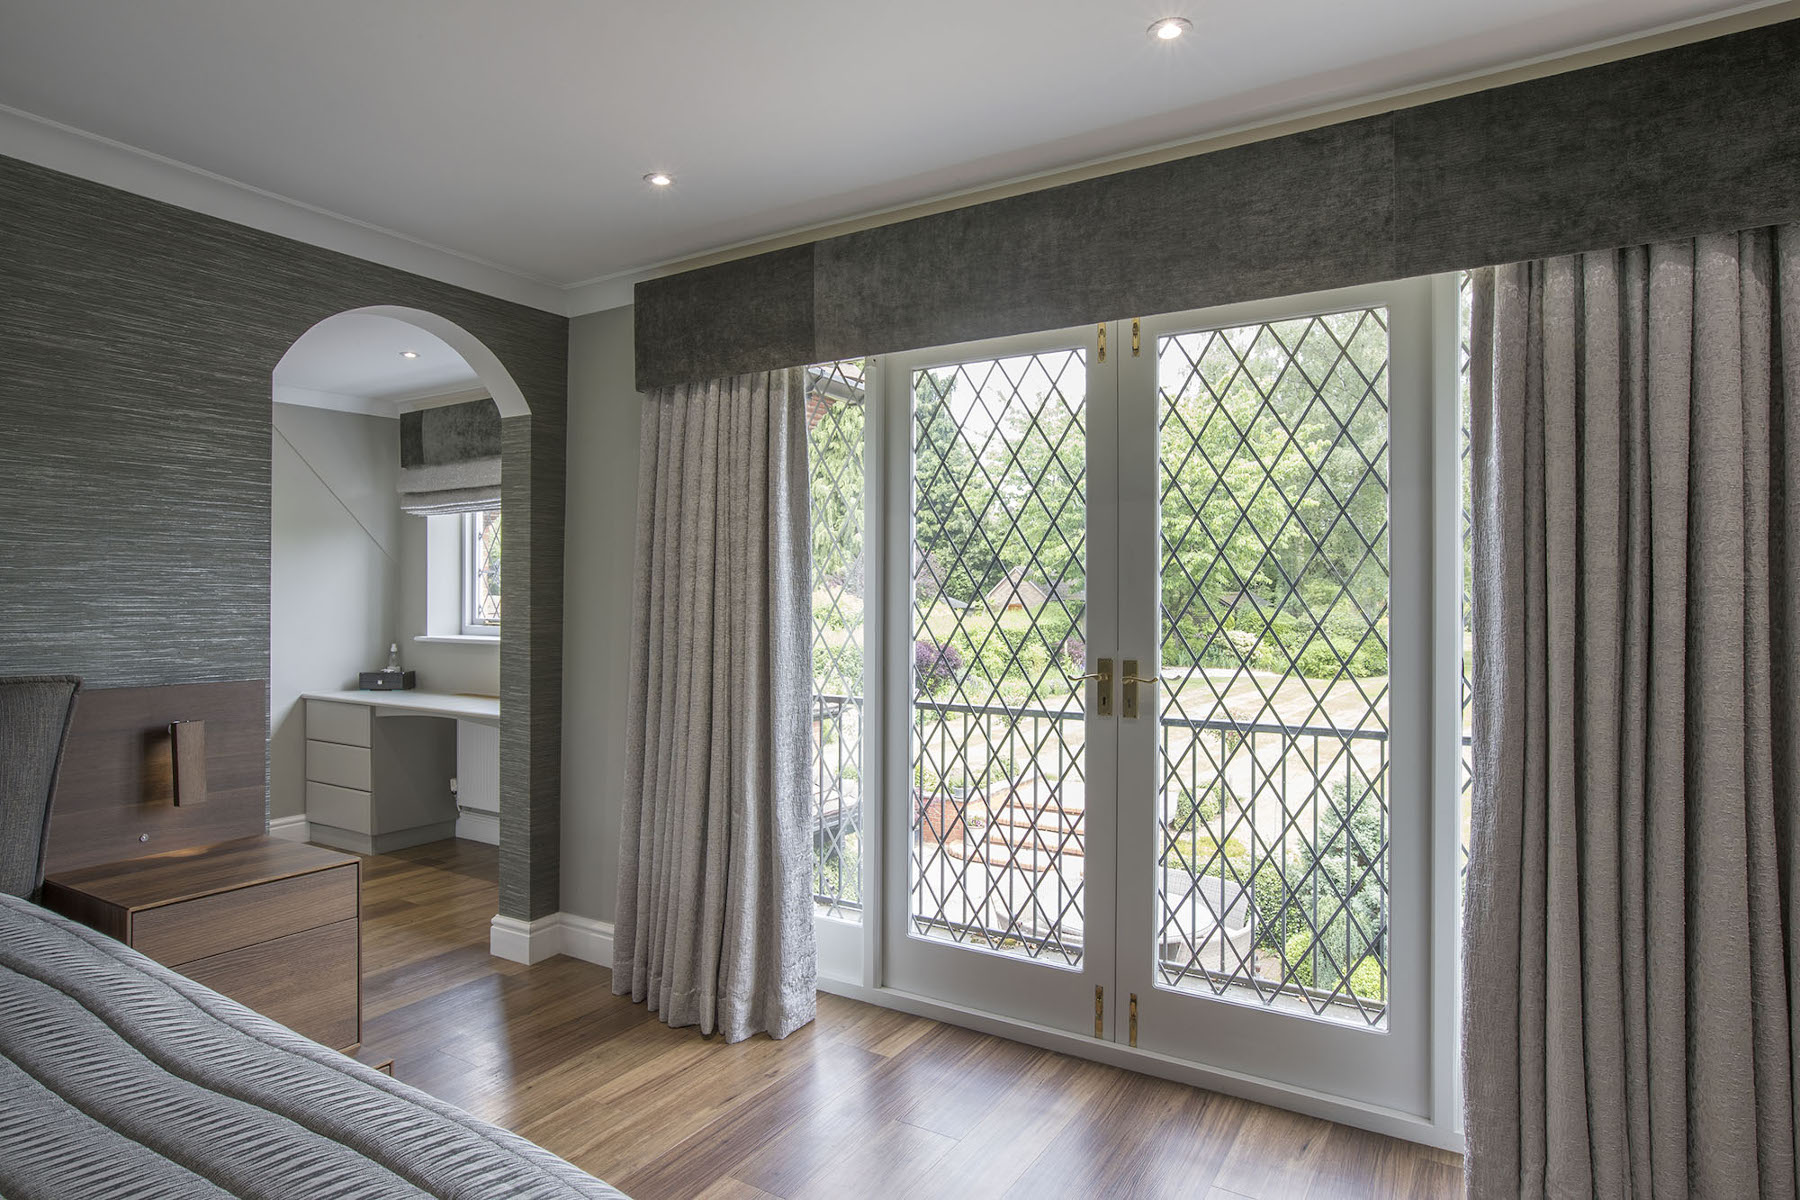 Bespoke Blinds - Made to measure